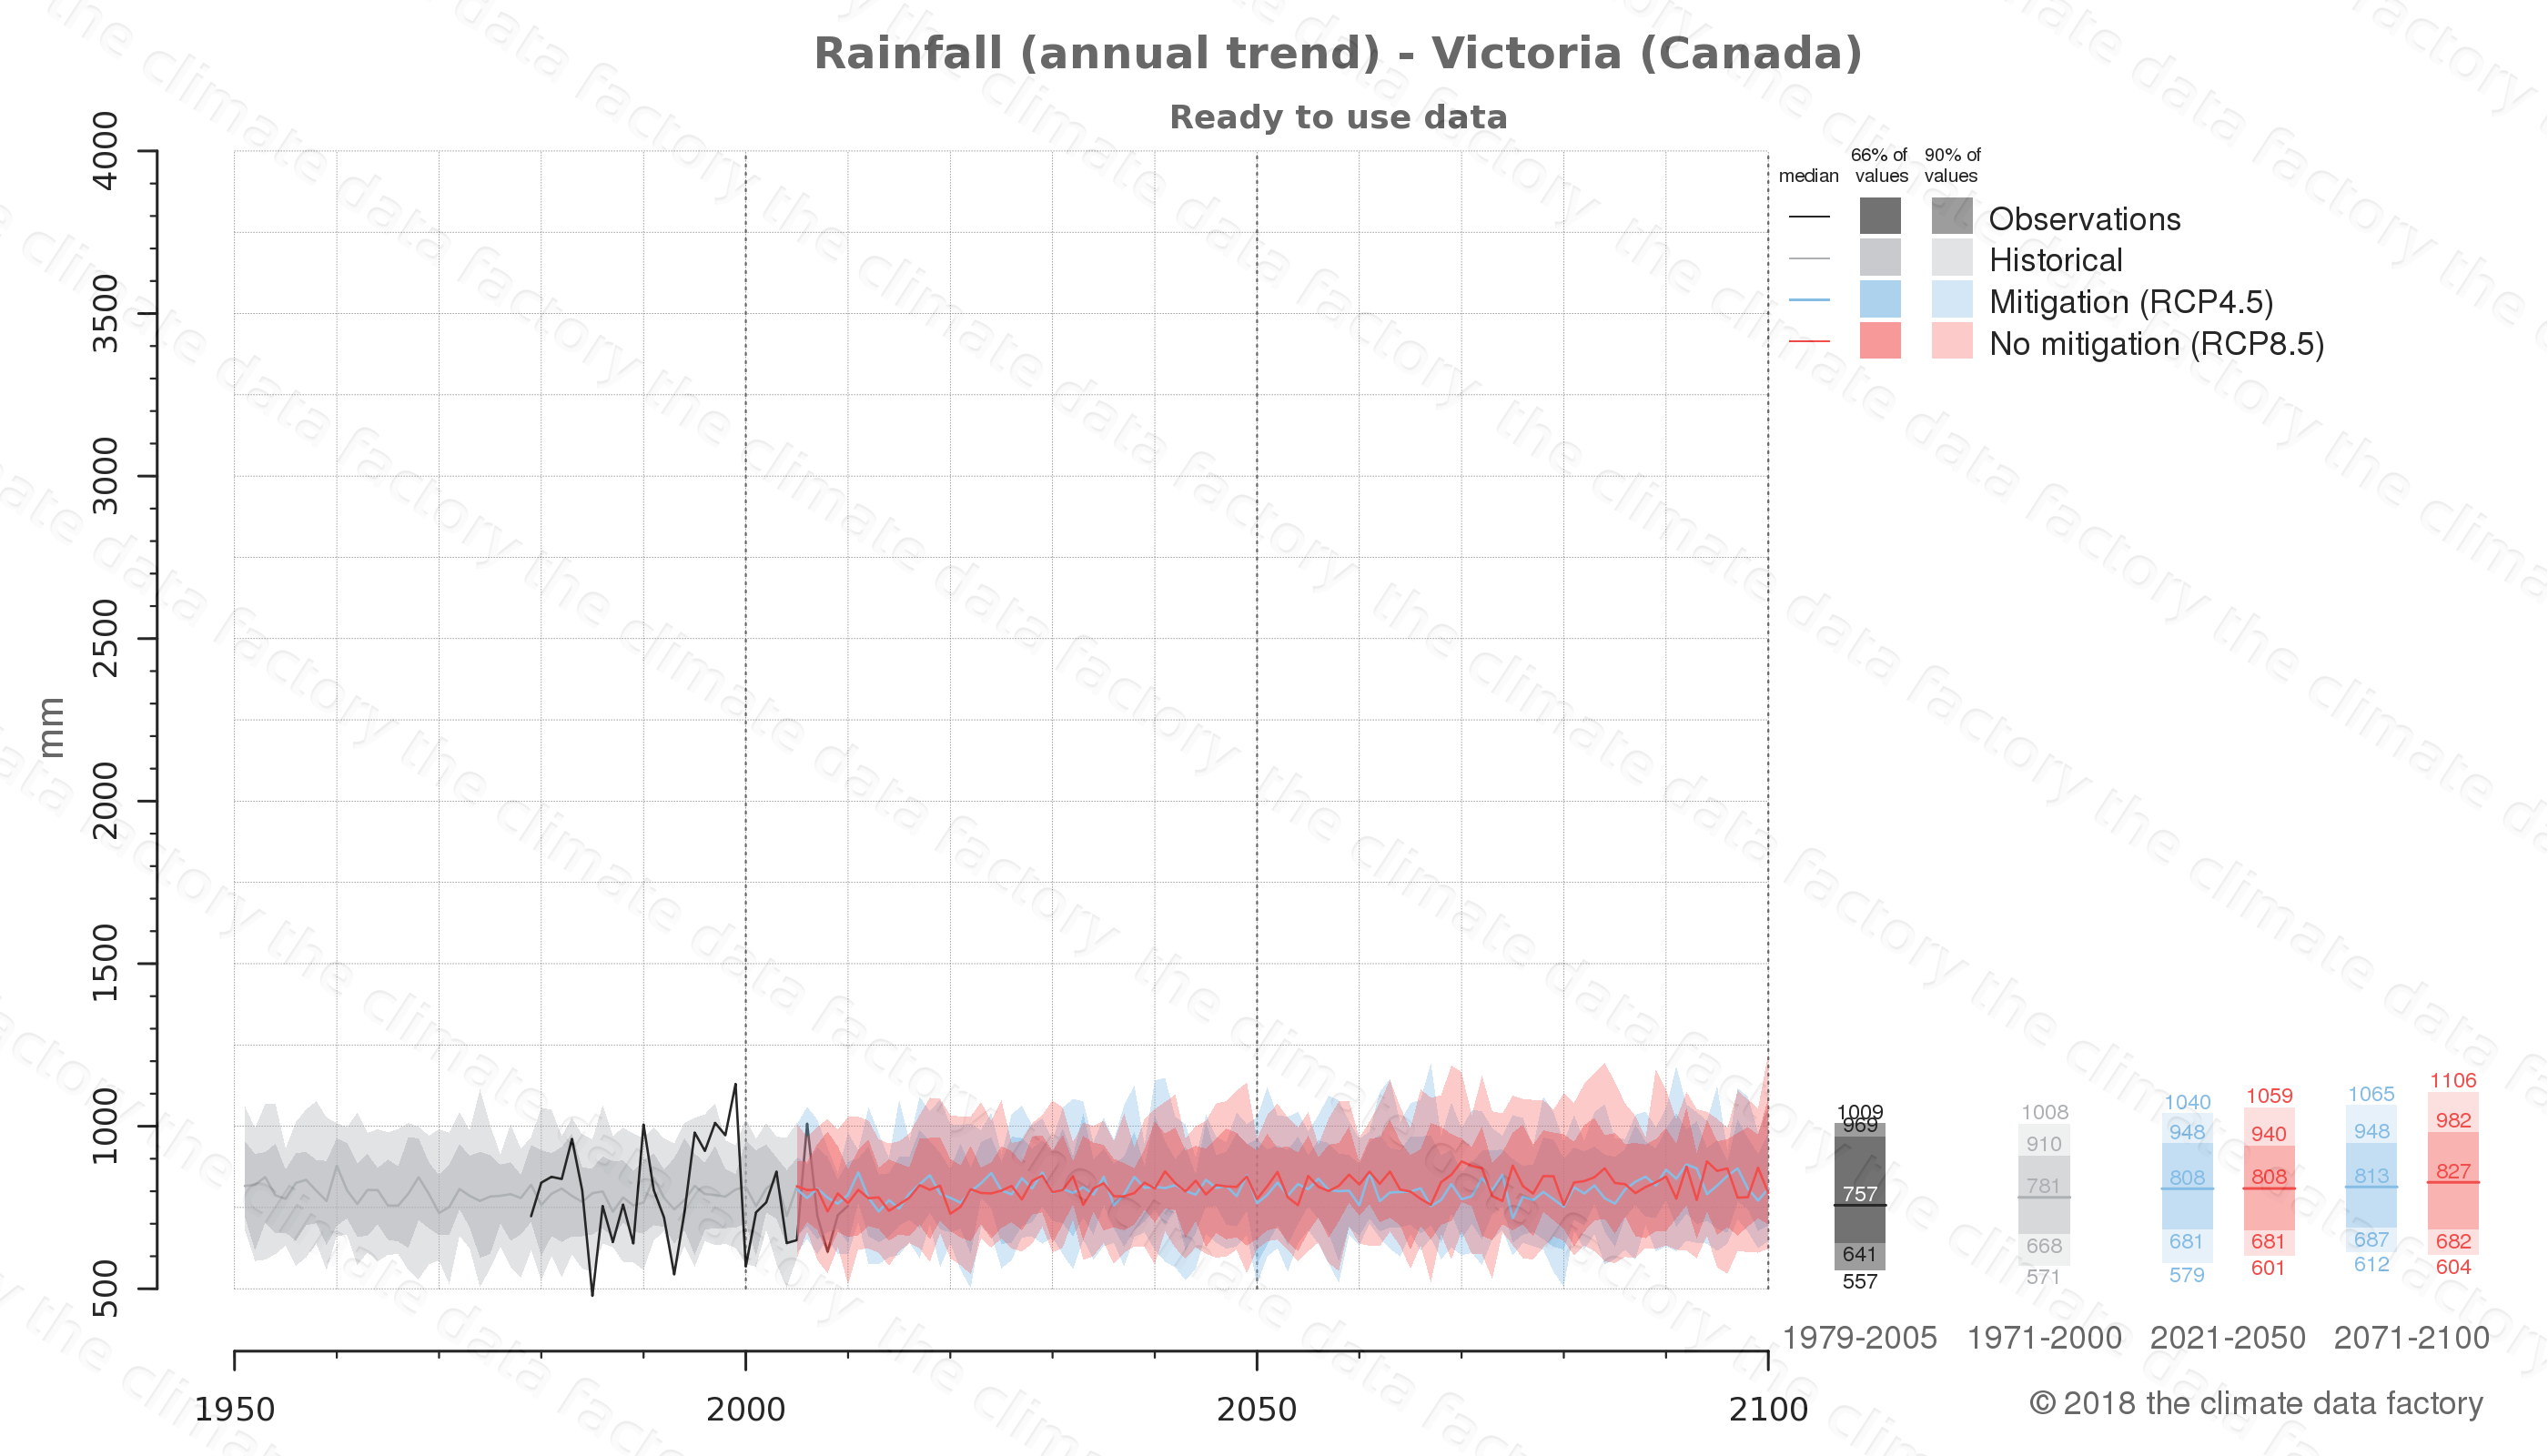 climate change data policy adaptation climate graph city data rainfall victoria canada